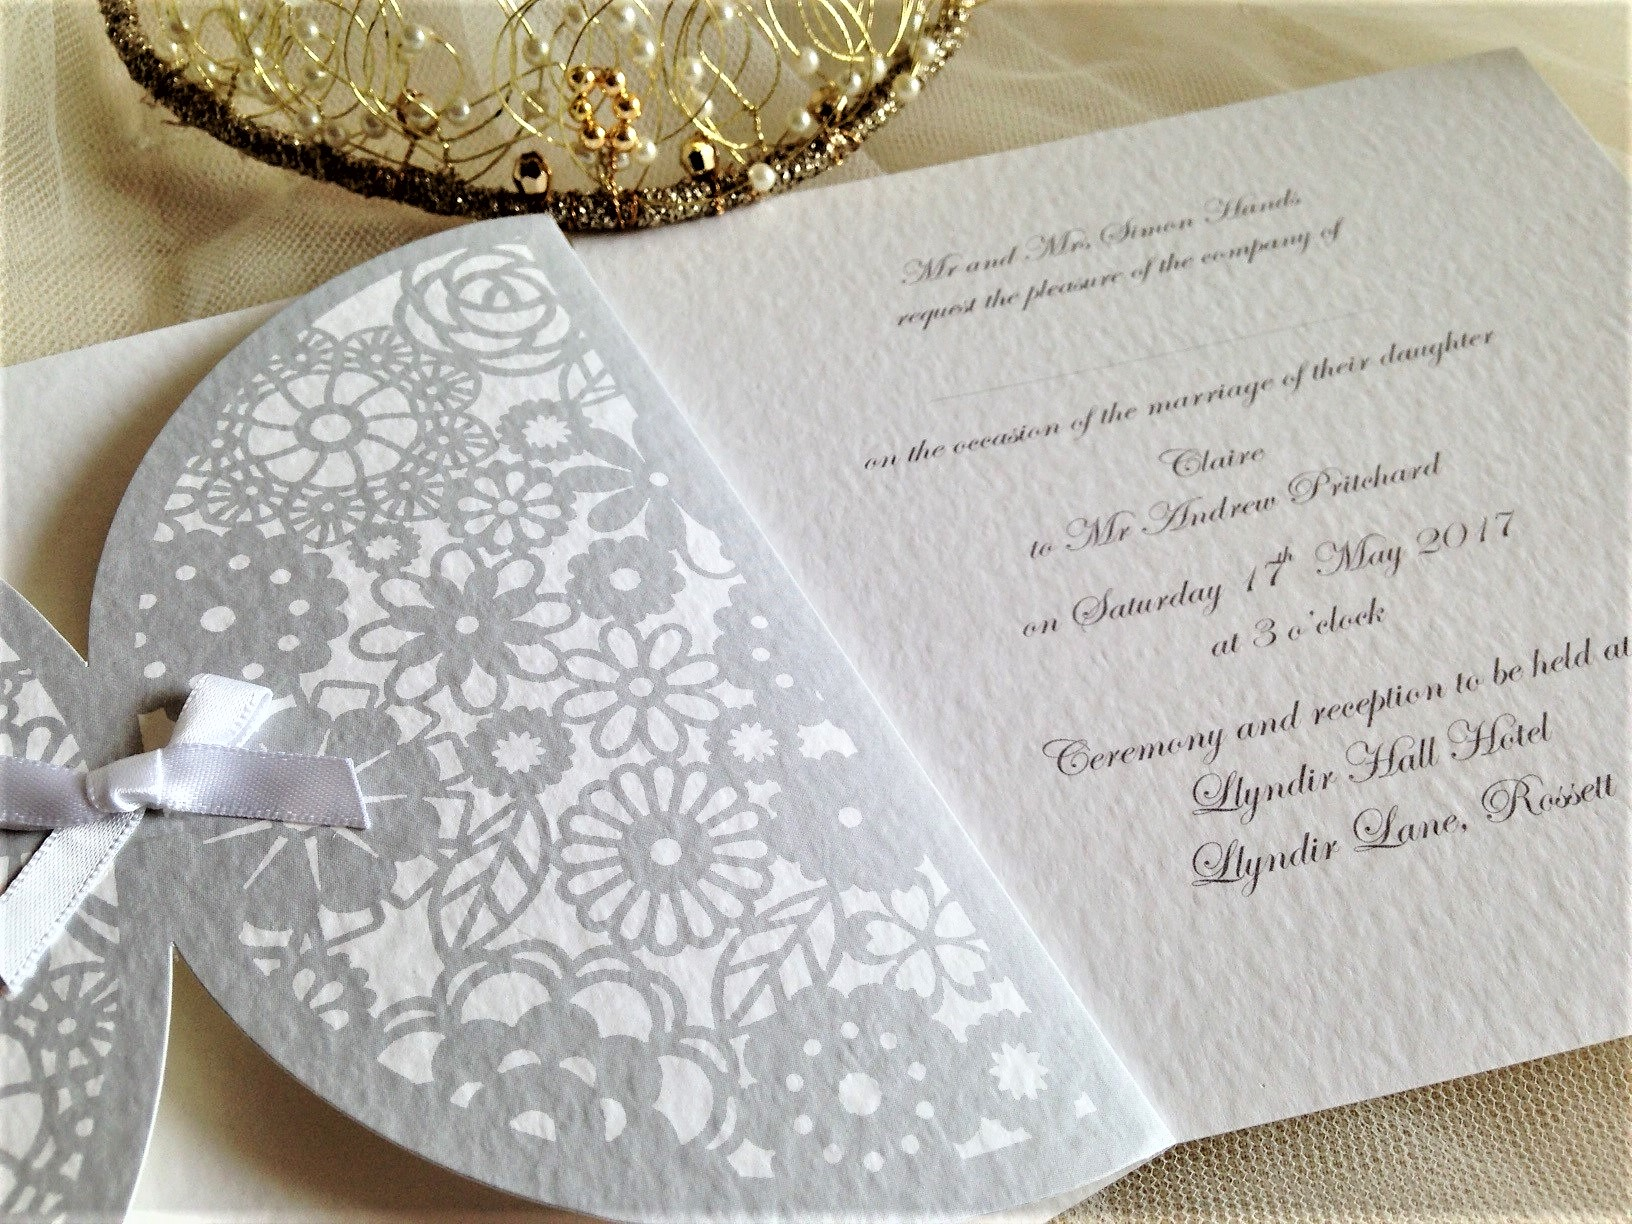 Decorative Sleeve Wedding invitations